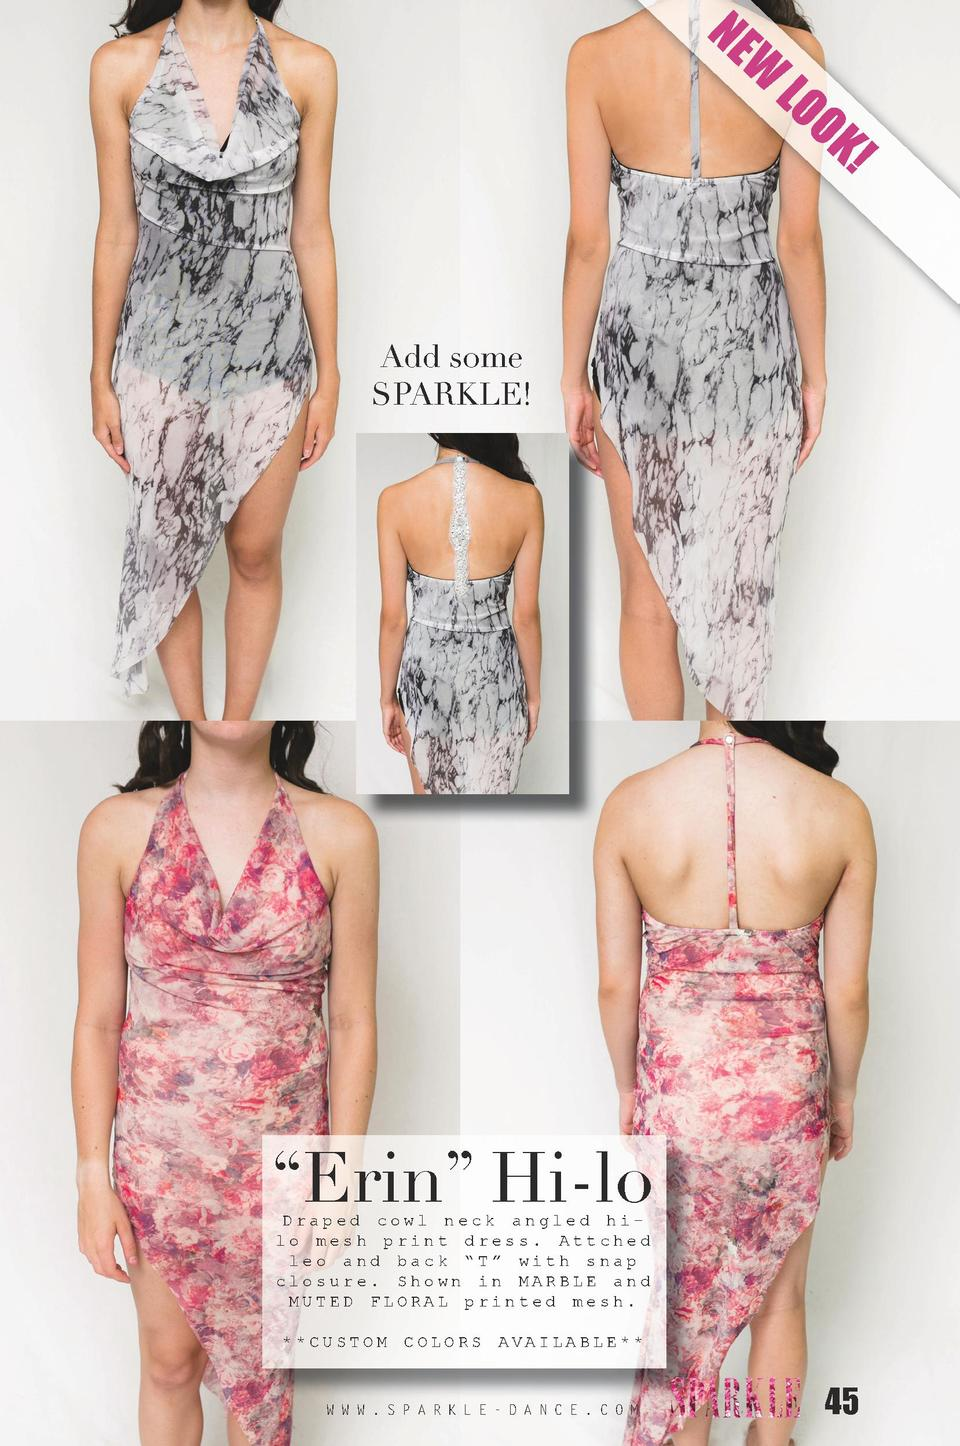 NE  W  LO O  K   Add some SPARKLE      Erin    Hi-lo Draped cowl neck angled hilo mesh print dress. Attched leo and back  ...